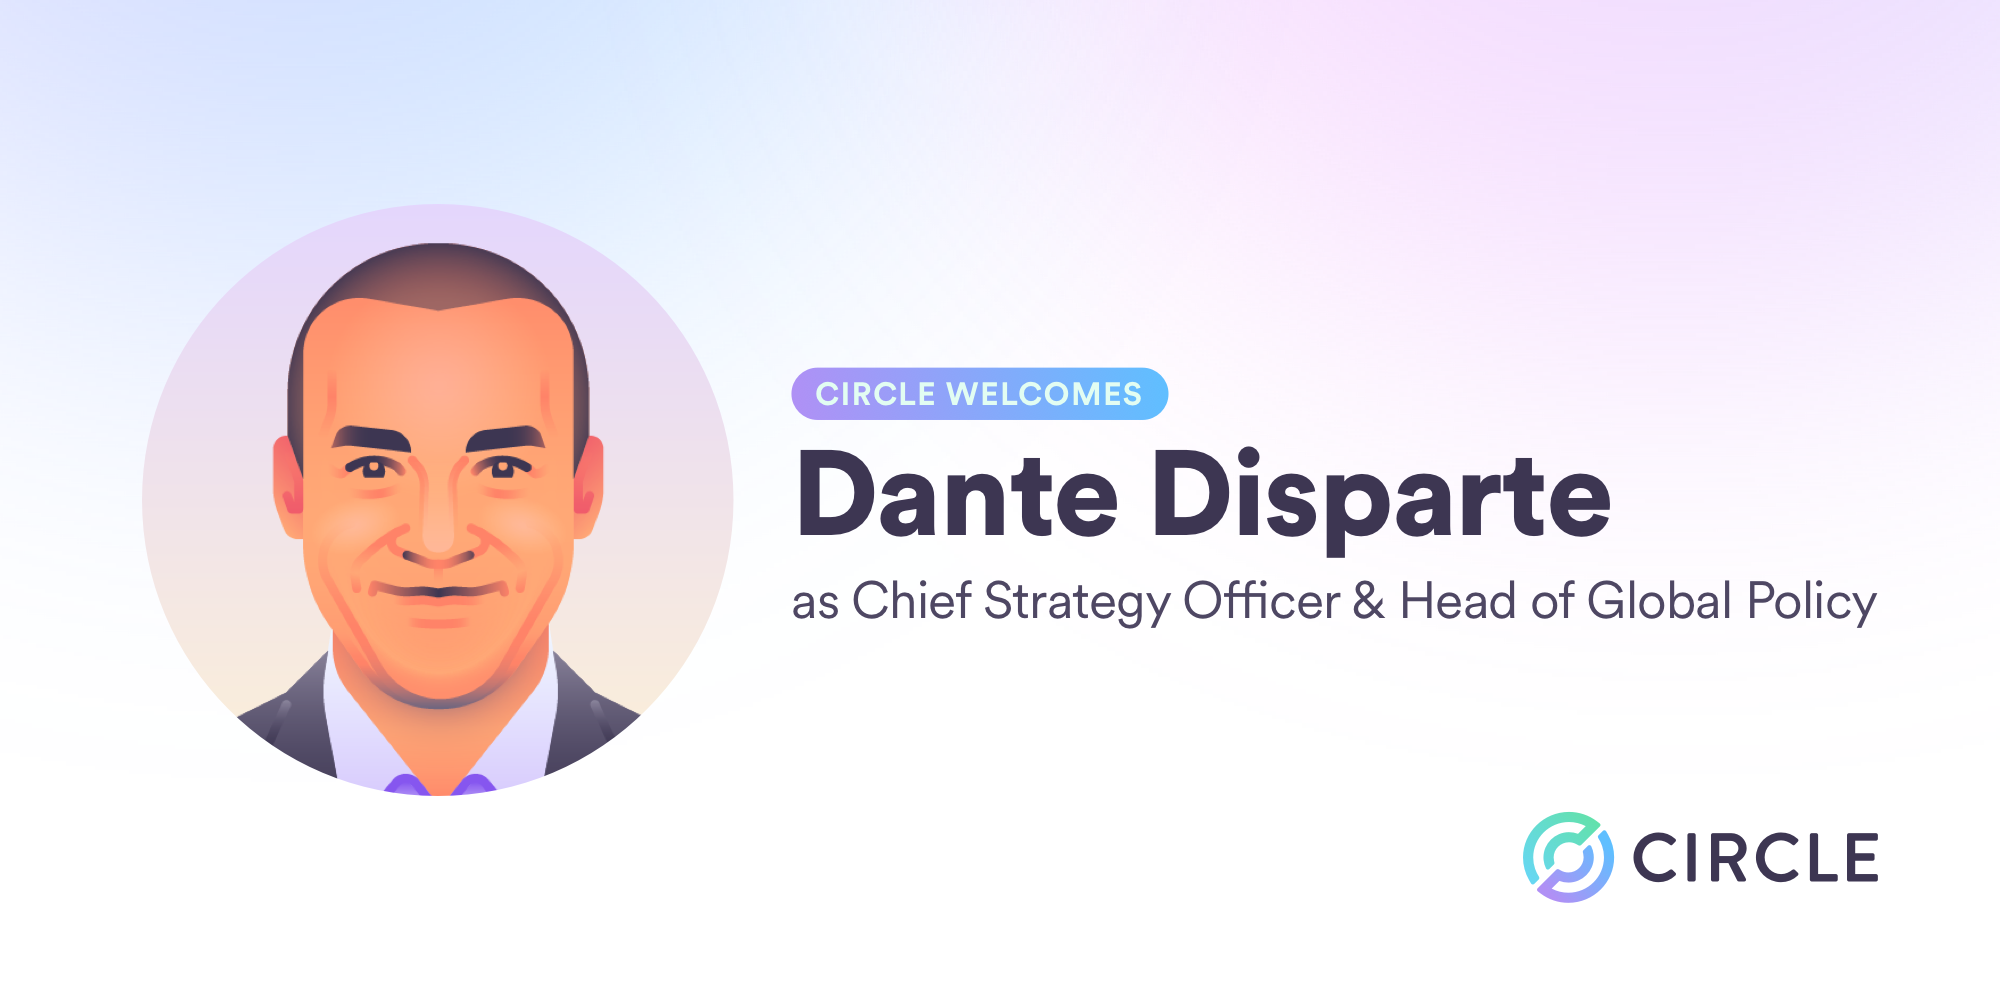 Circle Welcomes Dante Disparte as Chief Strategy Officer & Head of Global Policy for Circle